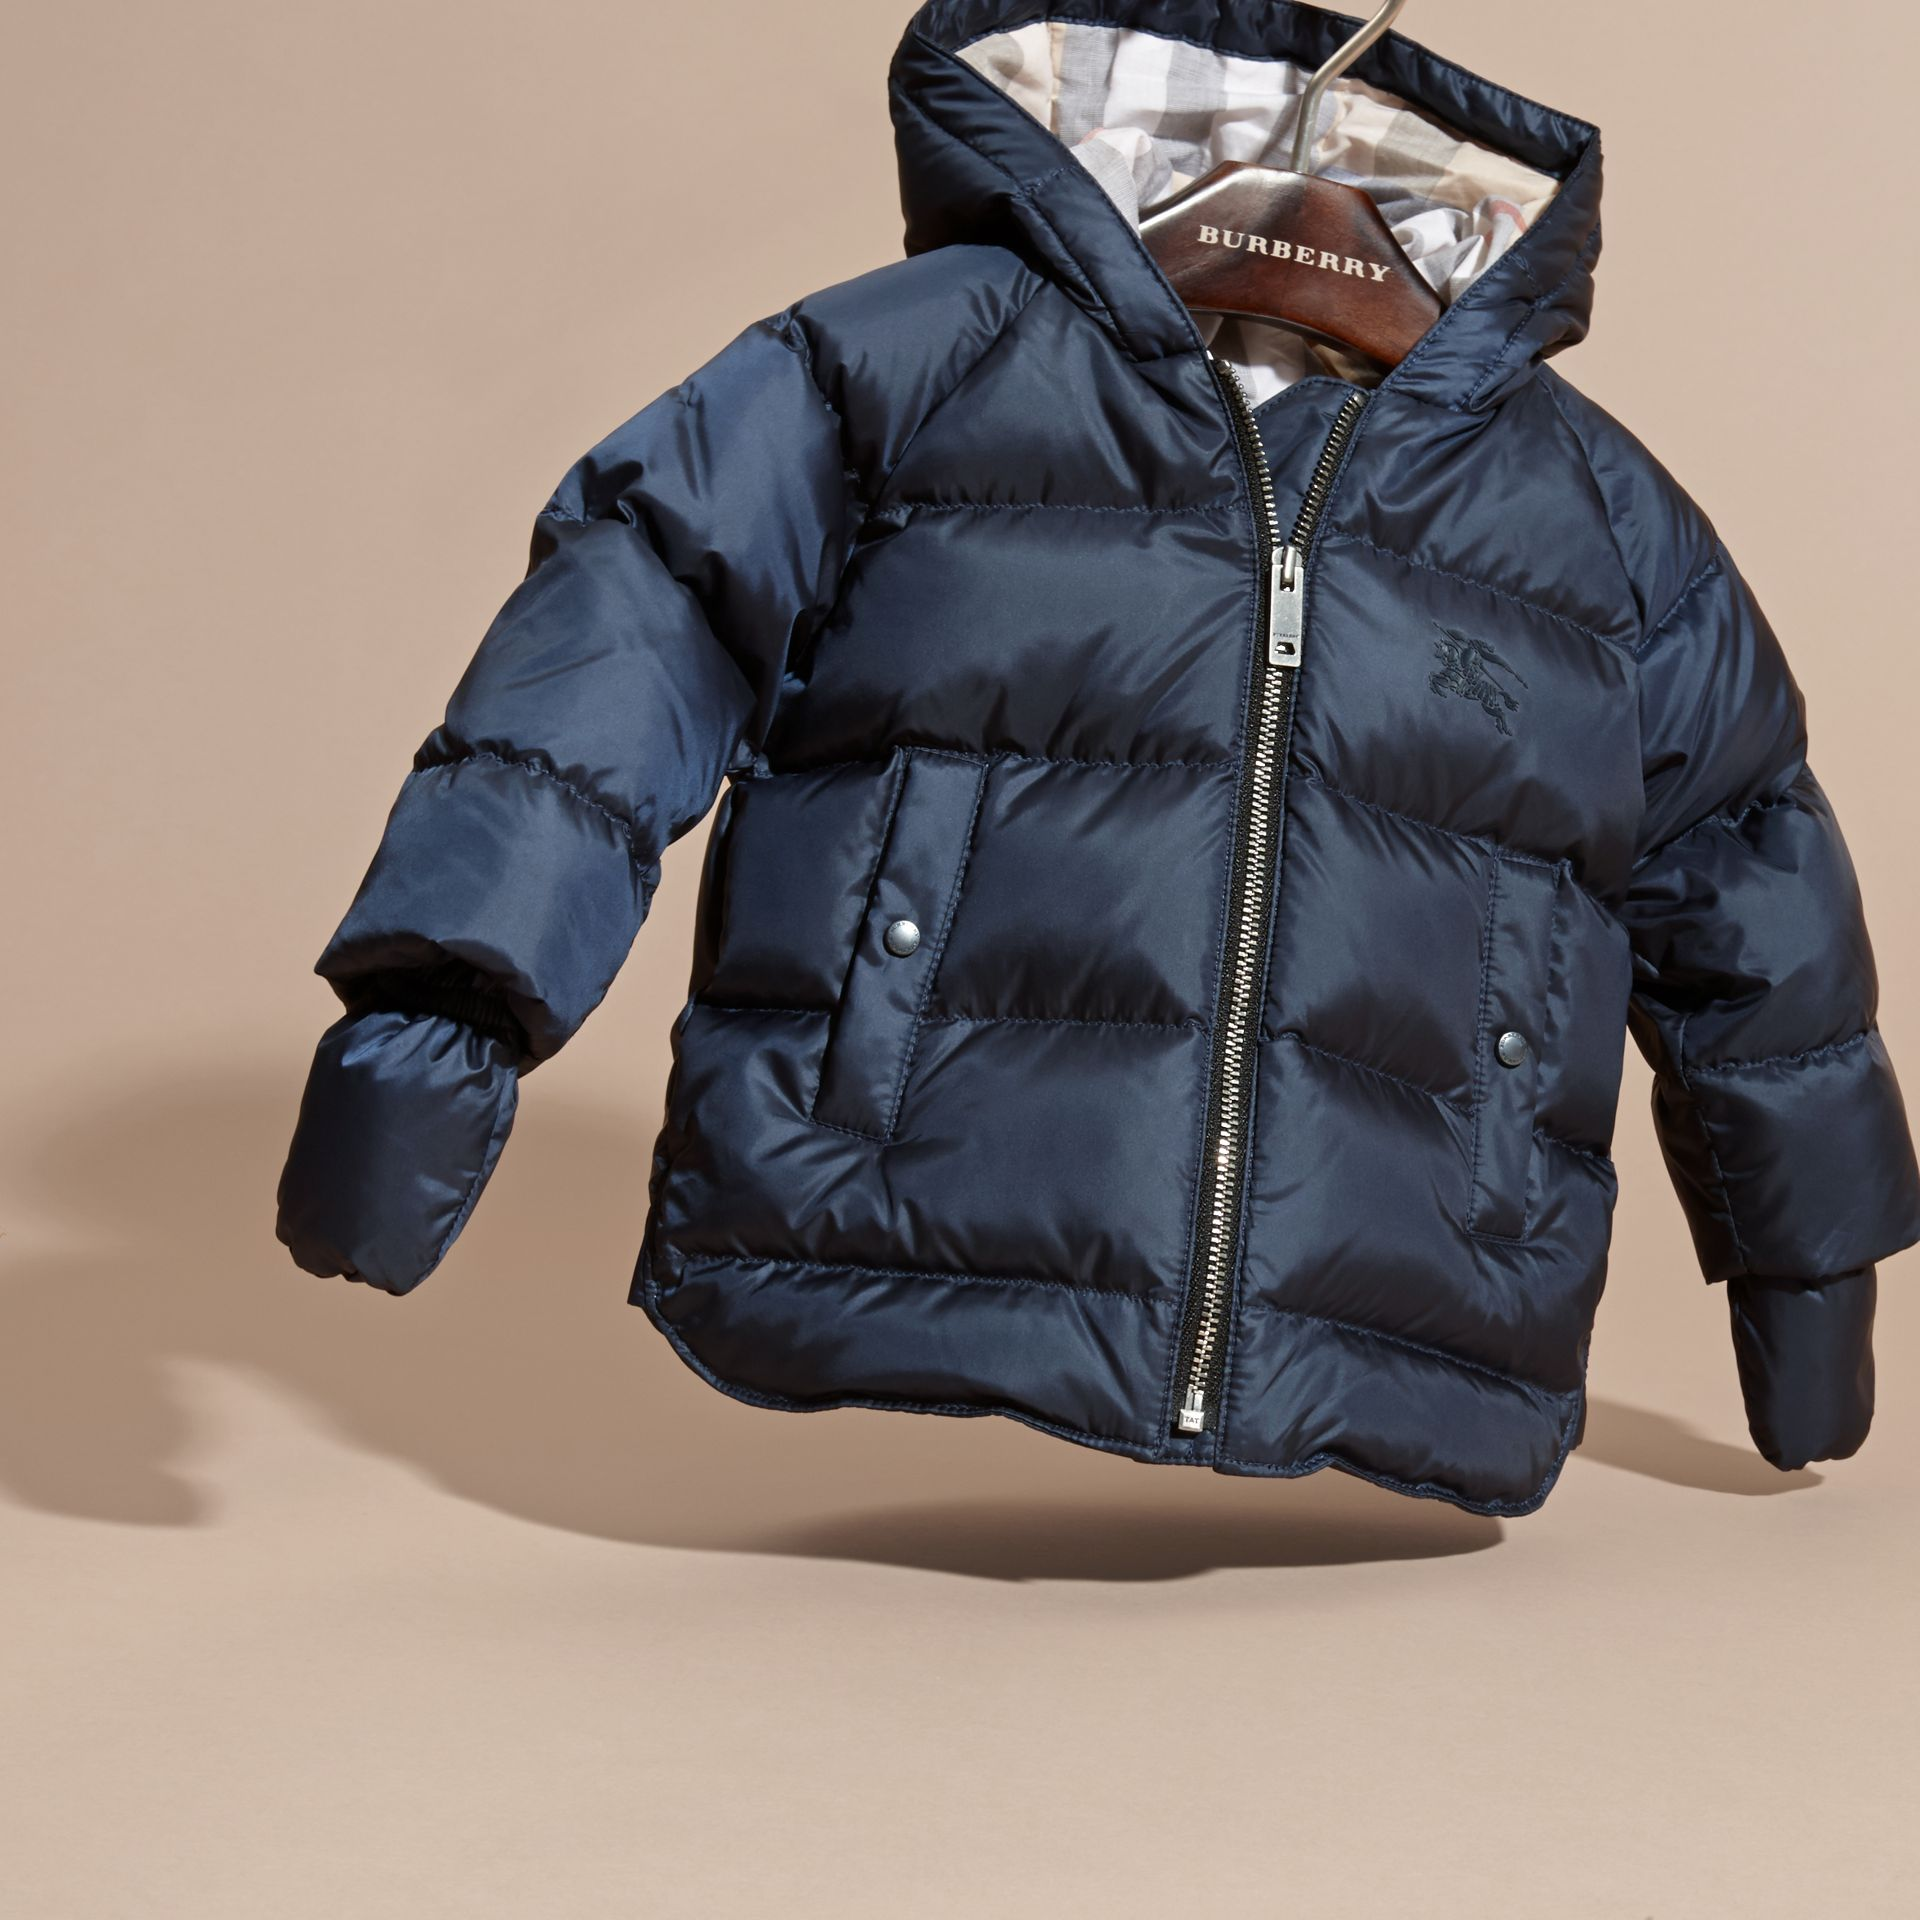 Navy Hooded Down-filled Puffer Jacket with Mittens Navy - gallery image 3